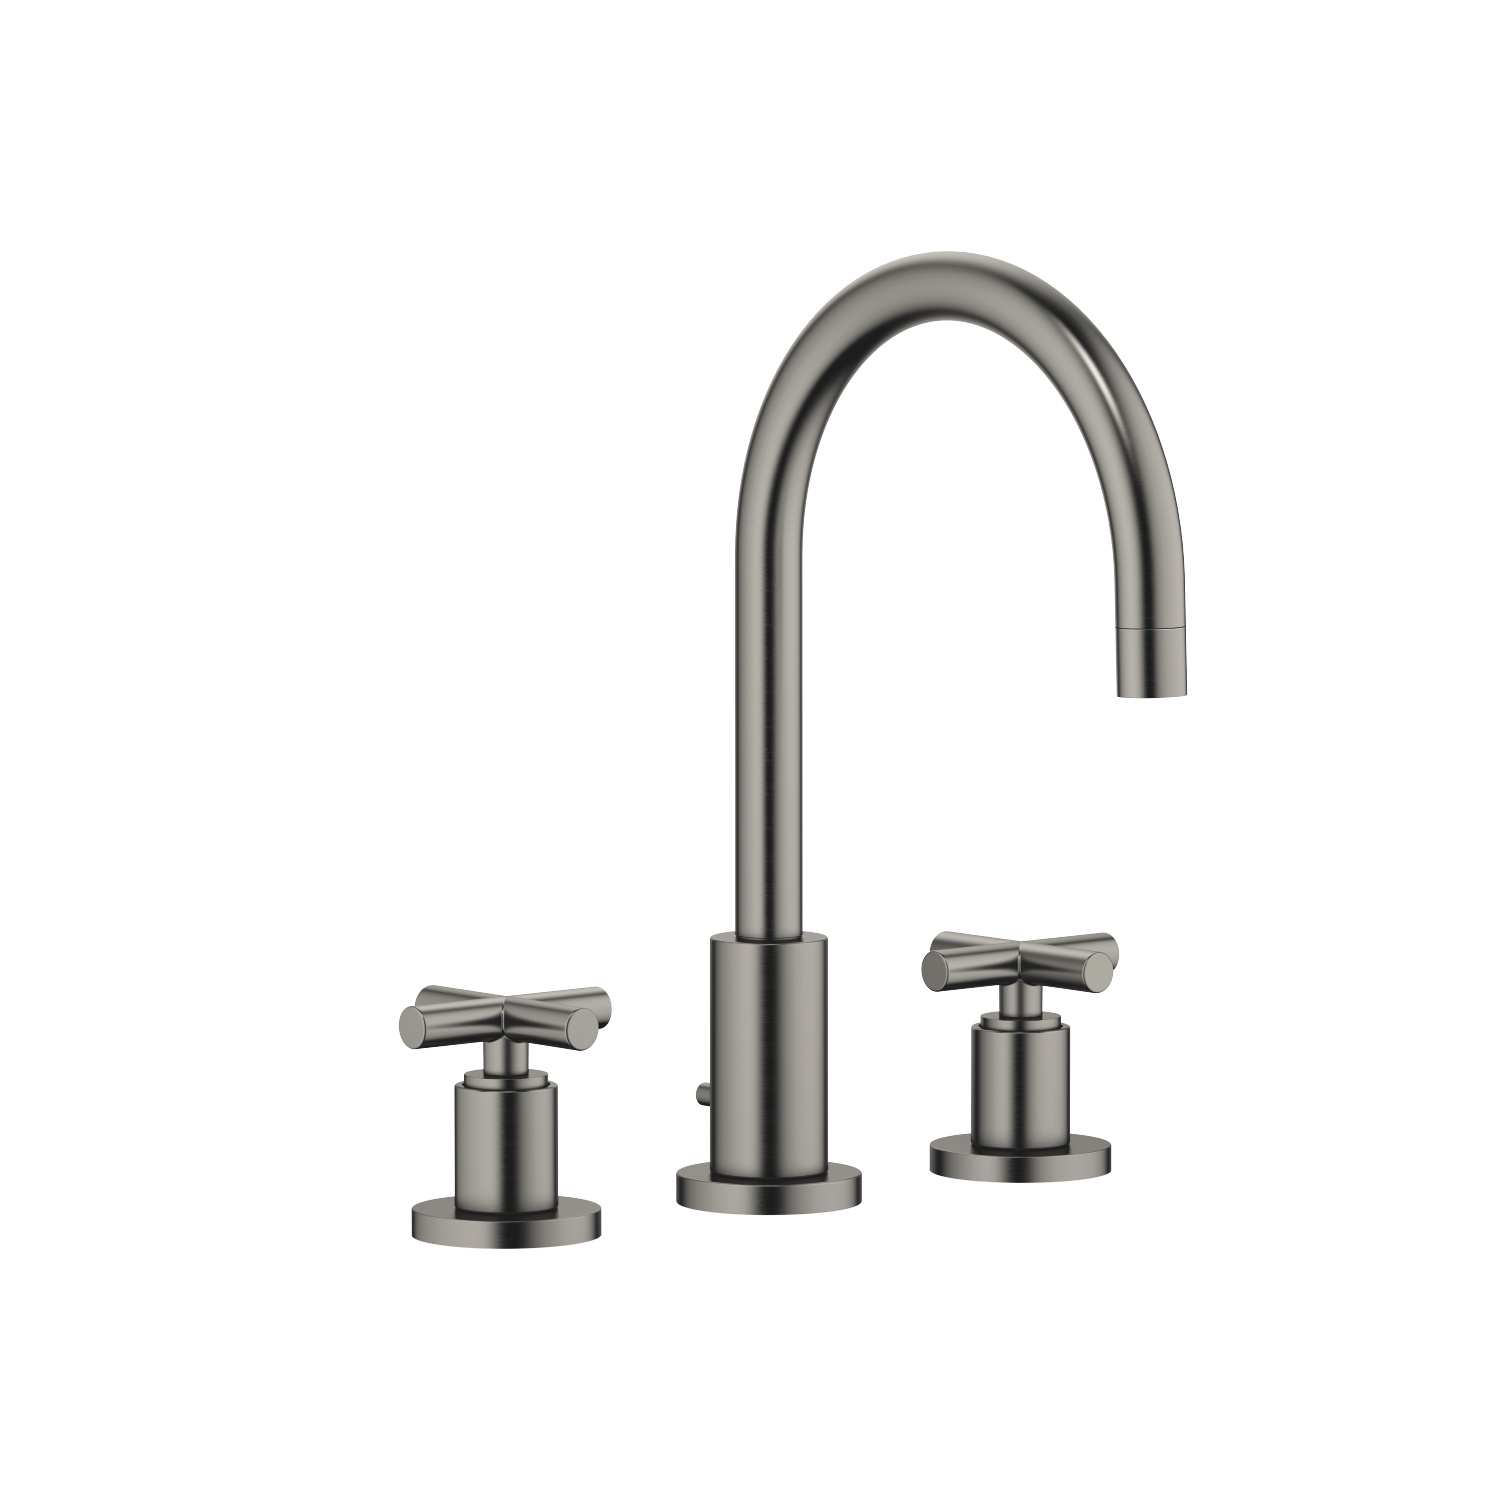 Three-hole basin mixer with pop-up waste - Dark Platinum matt - 20 713 892-99